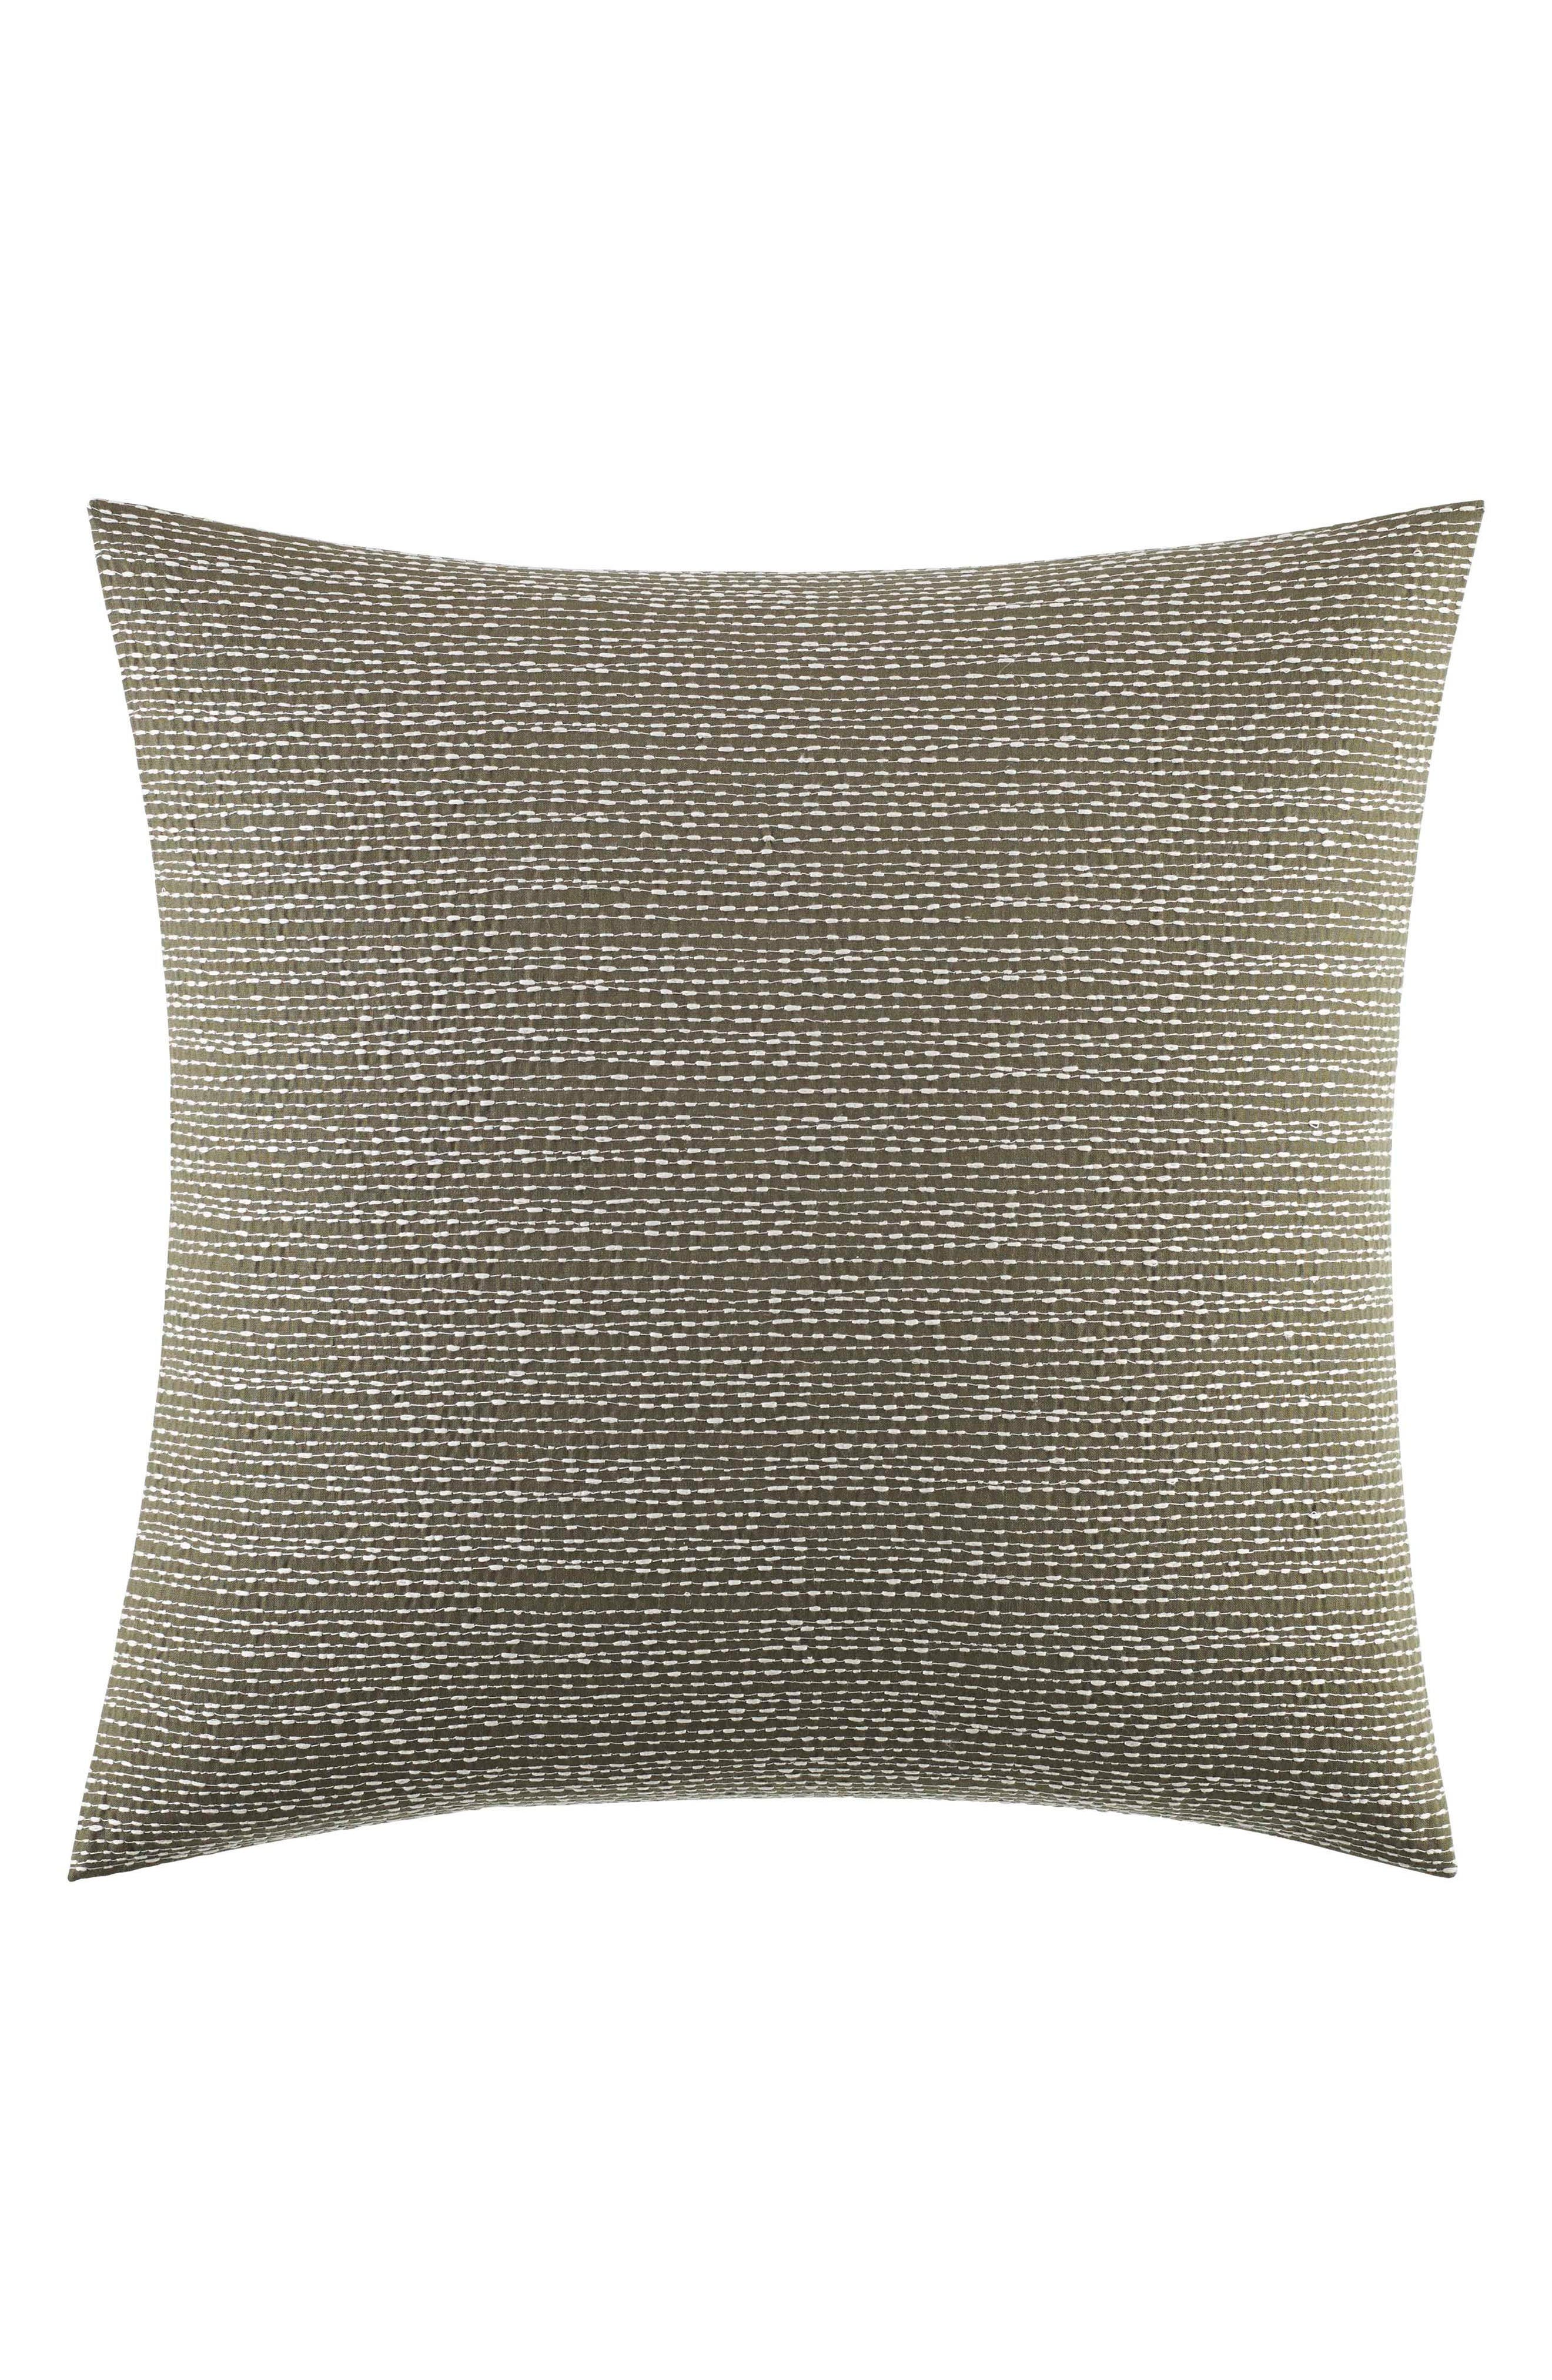 Dragonfly Accent Pillow,                         Main,                         color,